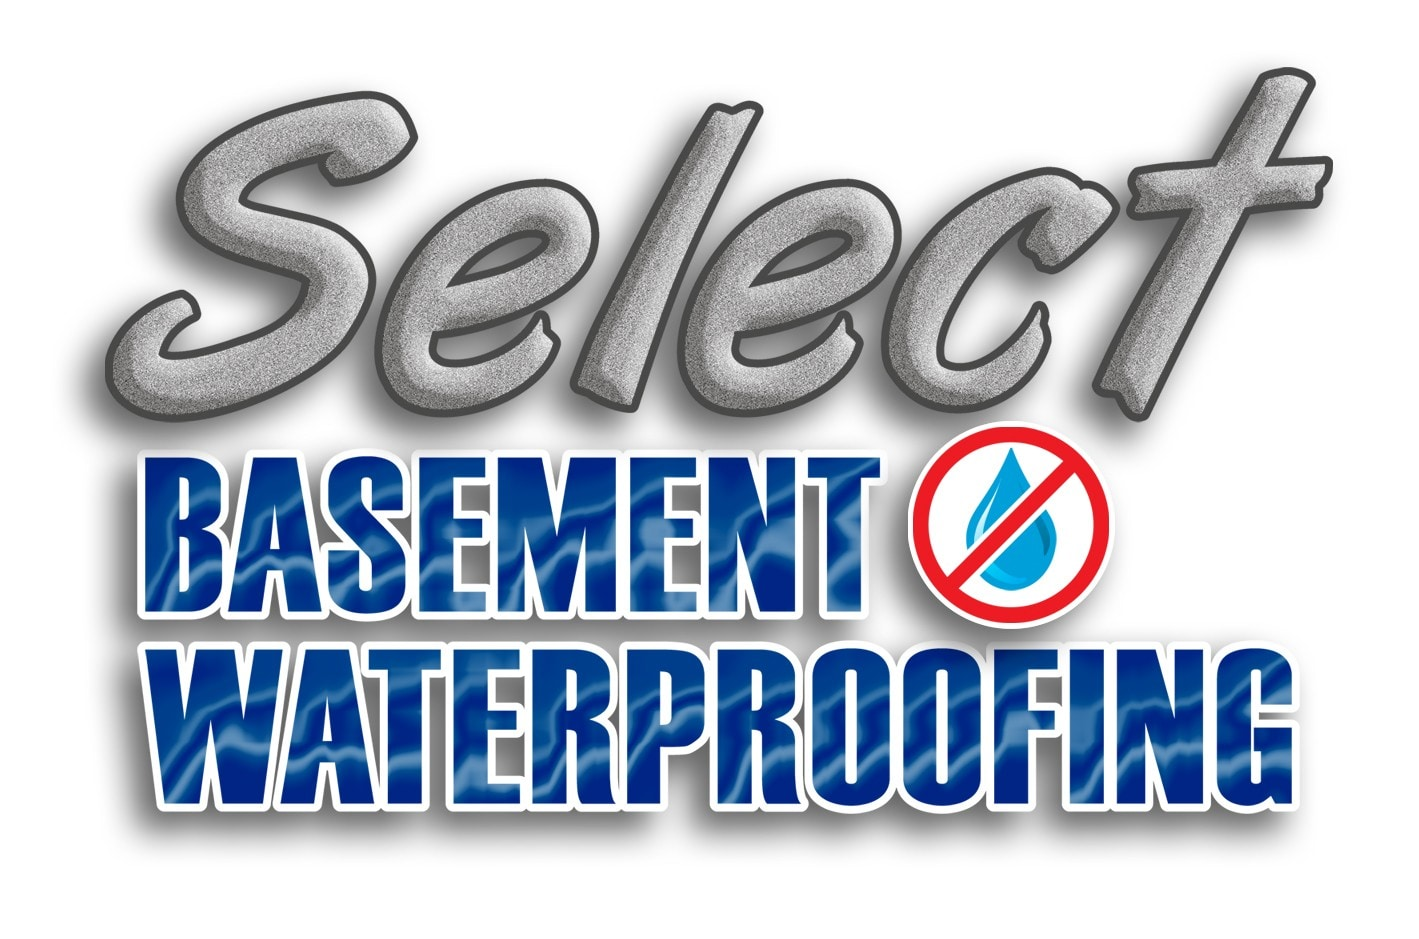 Select Basement Waterproofing Inc